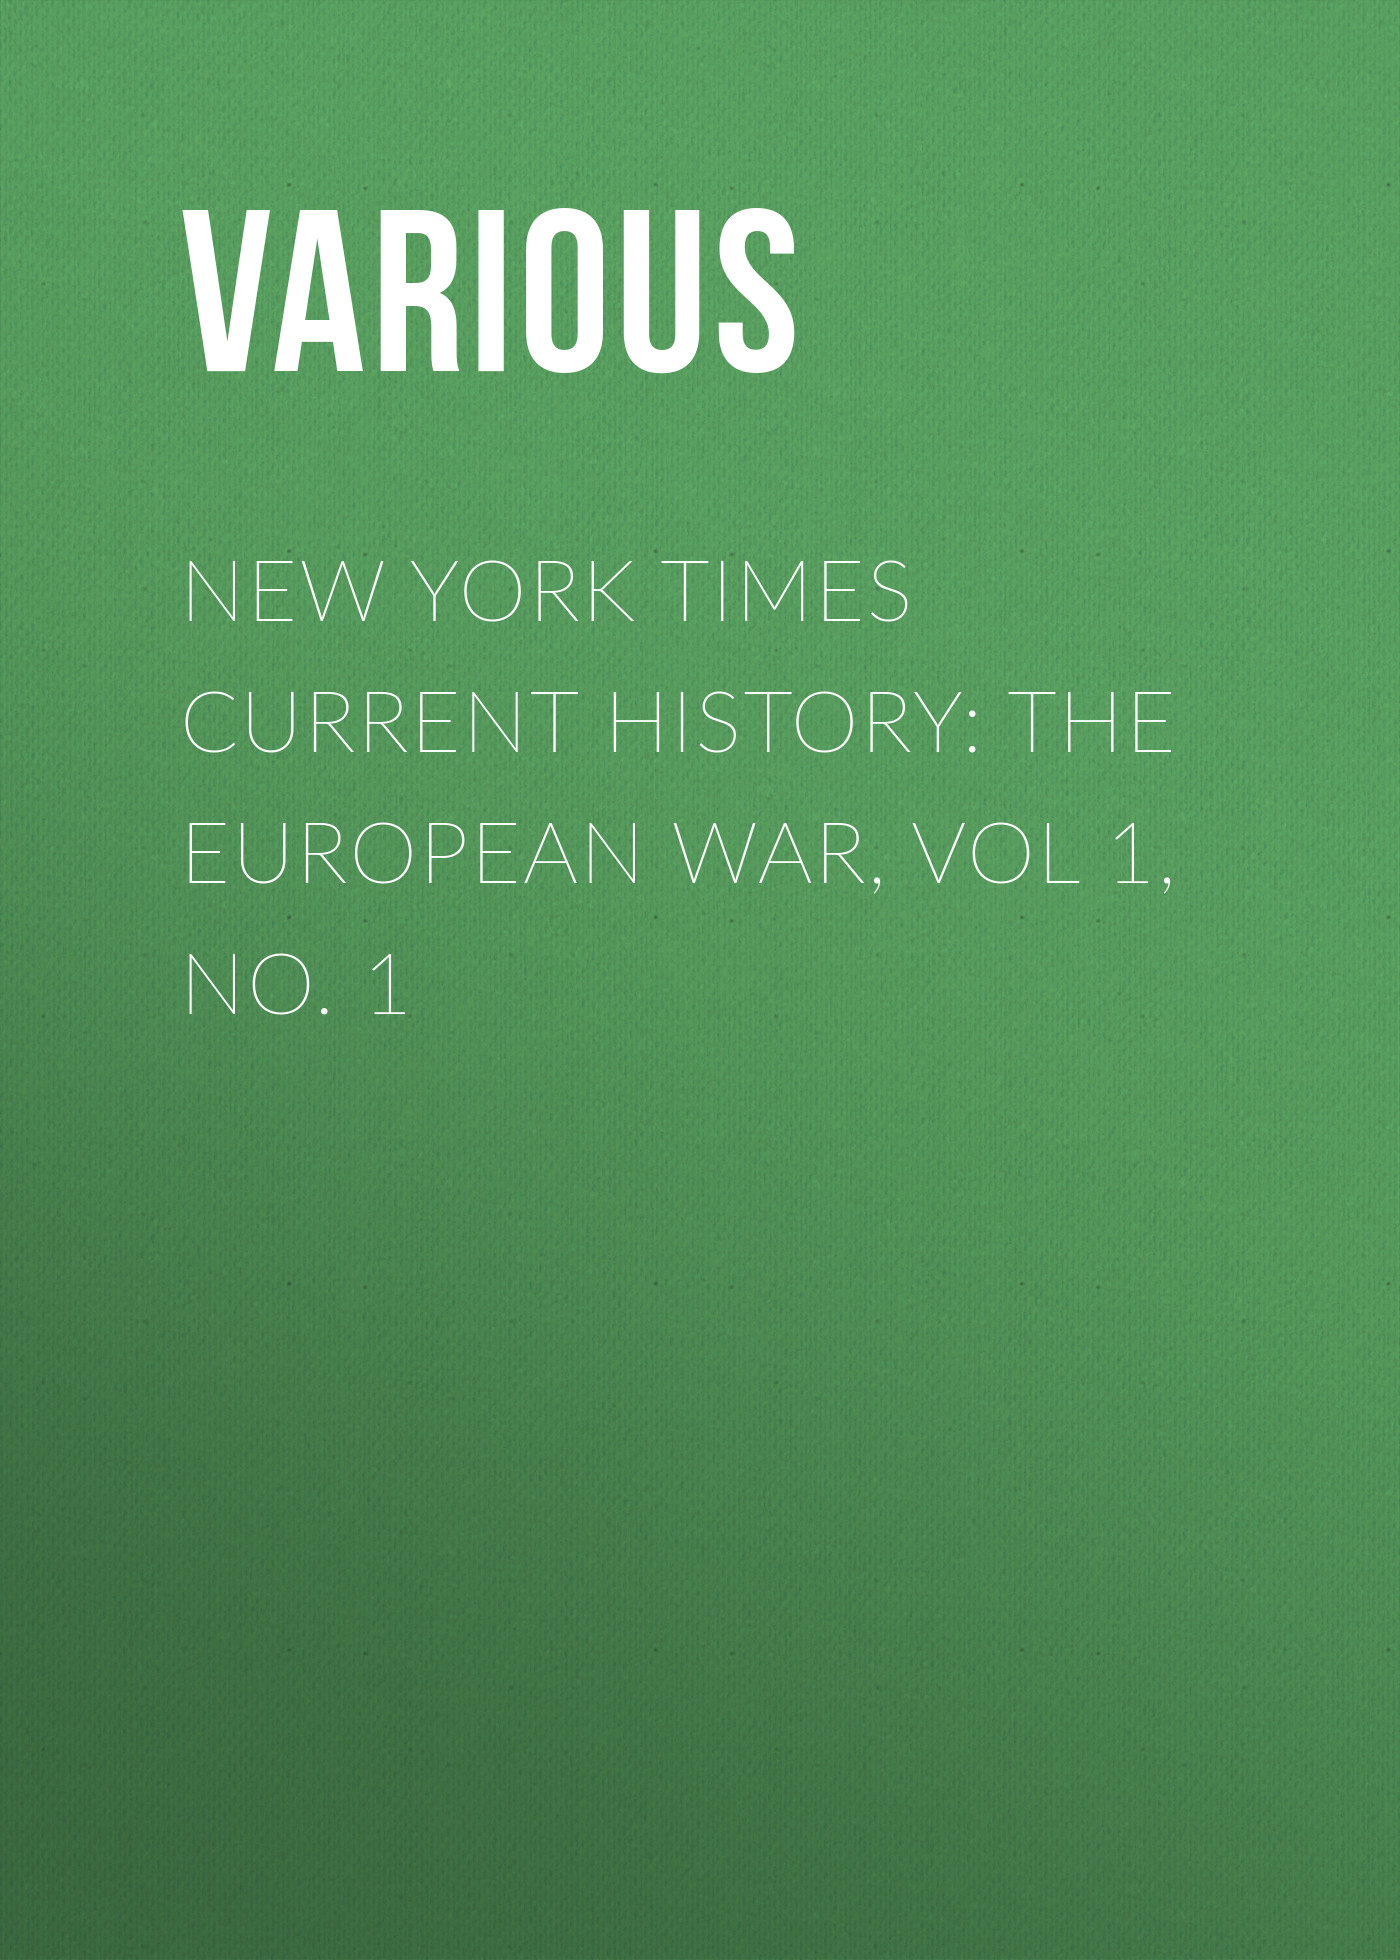 Various New York Times Current History: The European War, Vol 1, No. 1 new 10 1